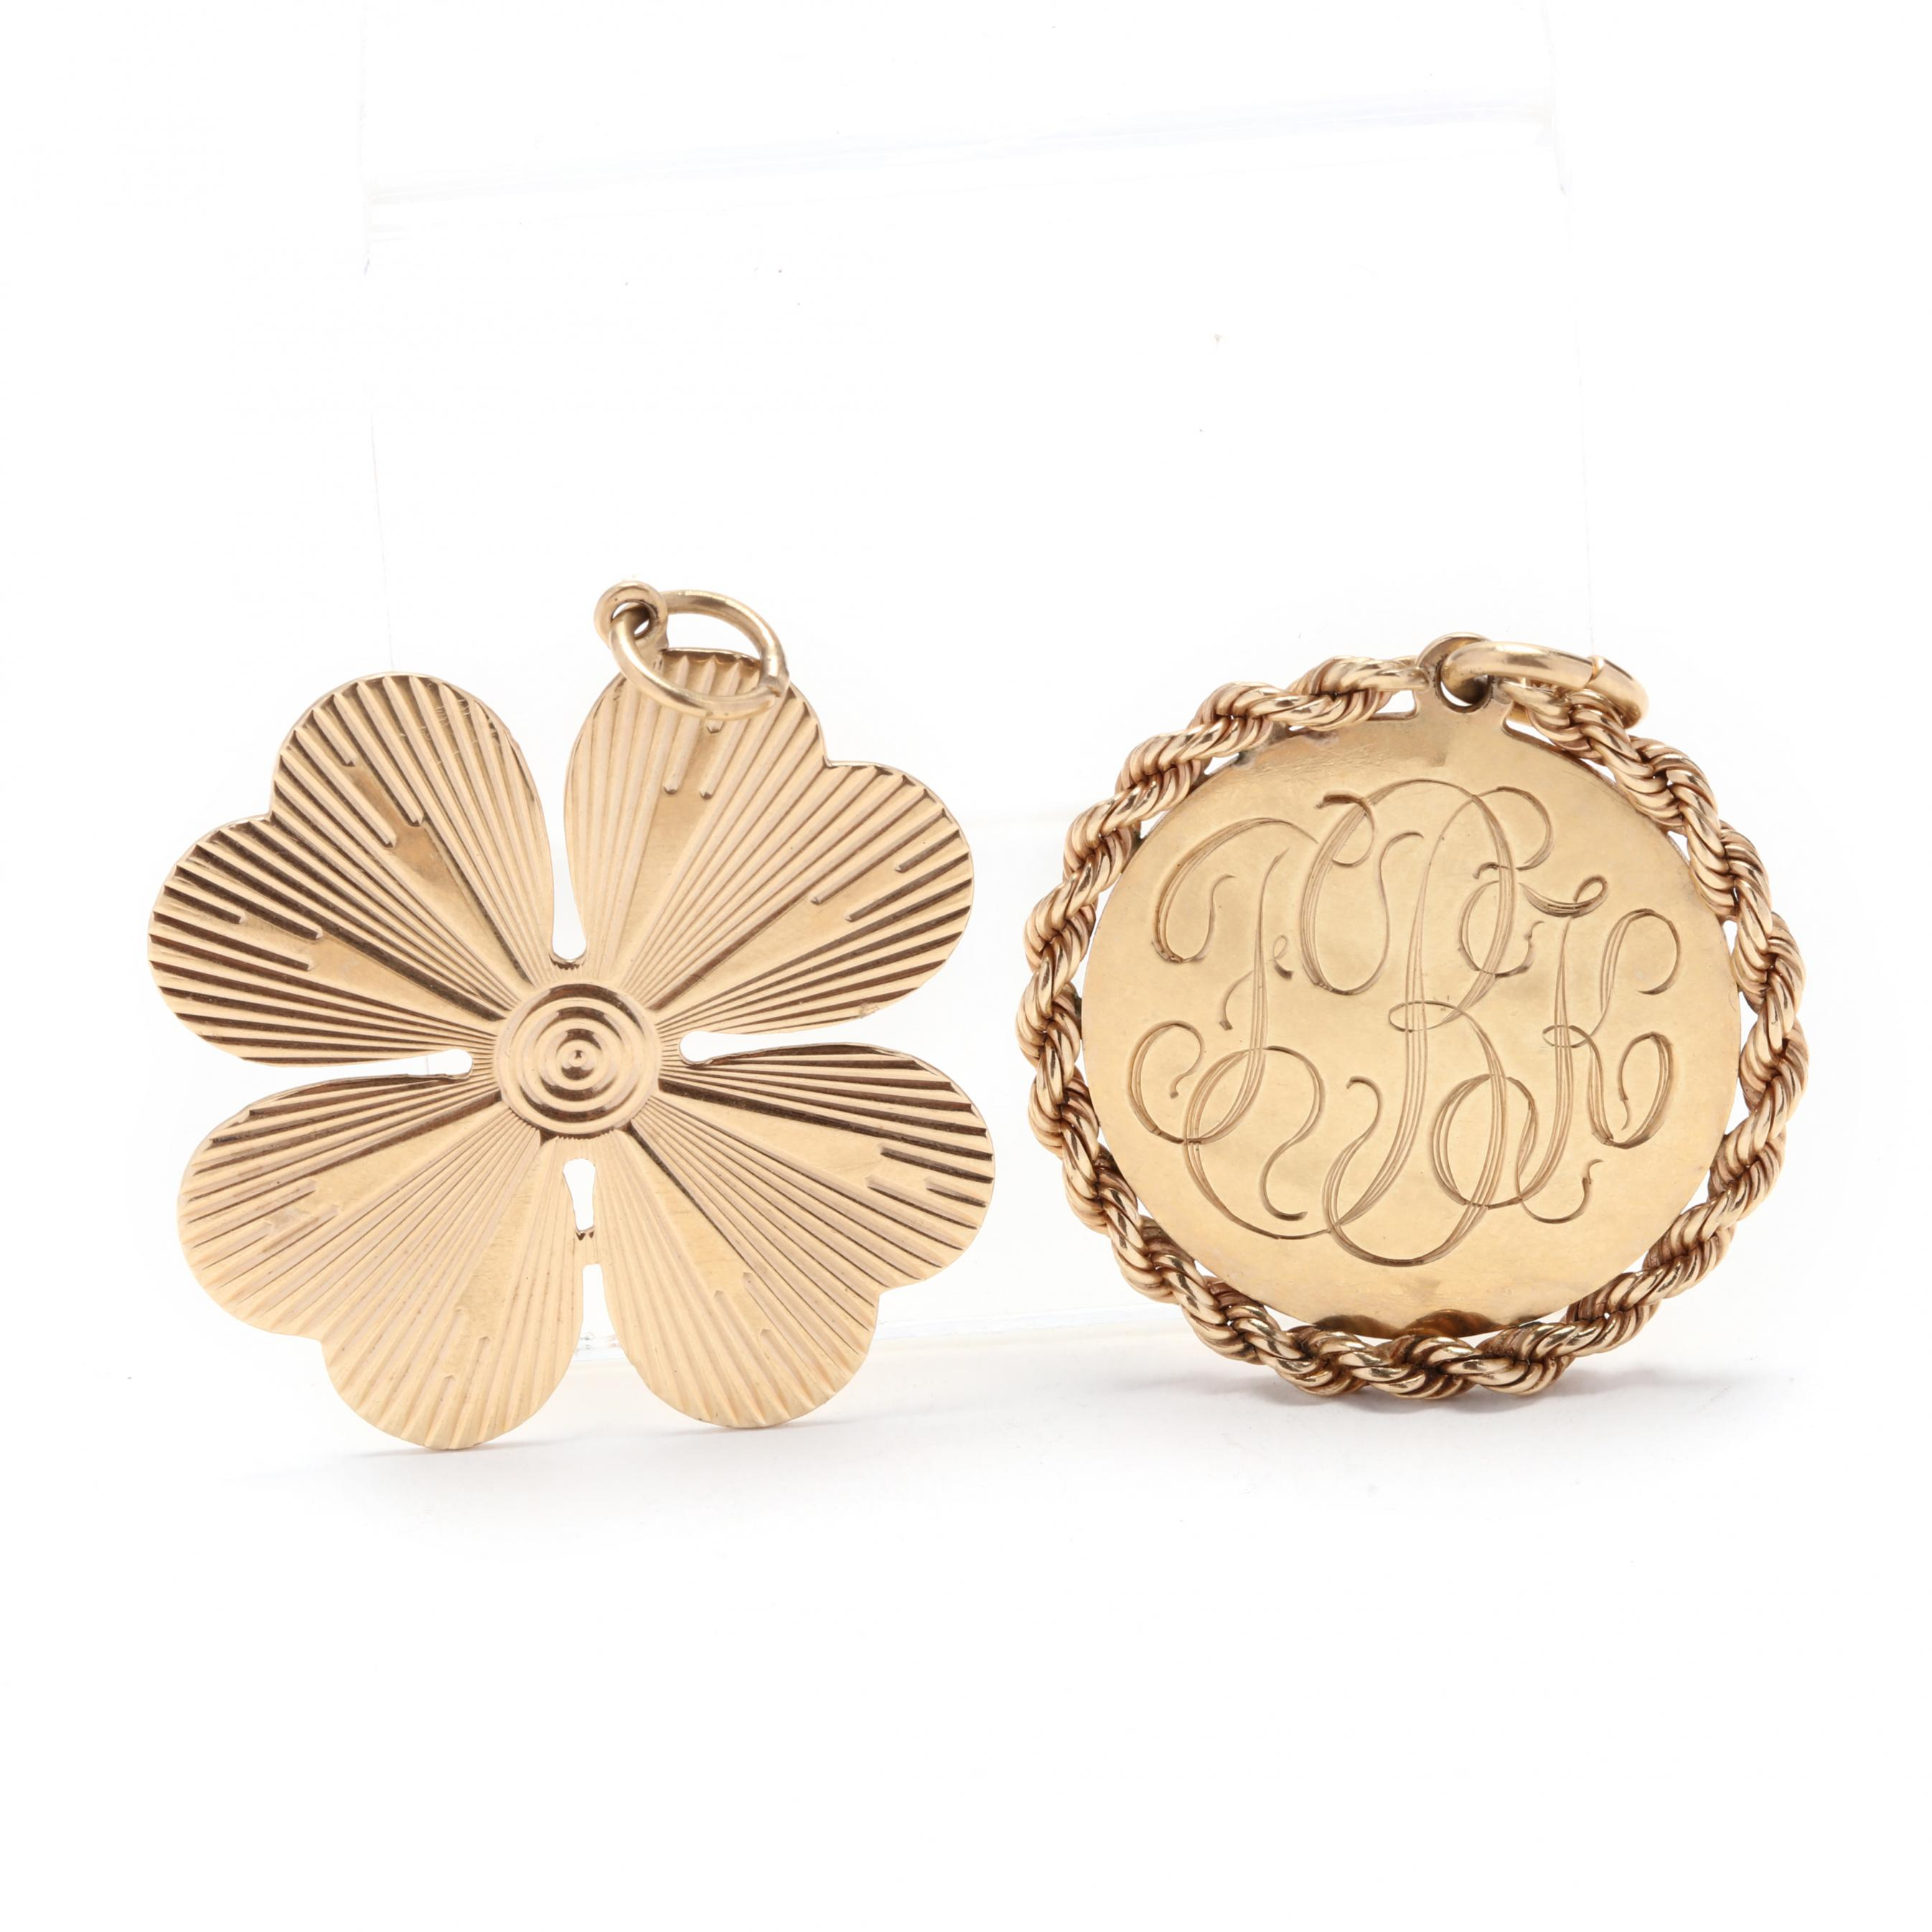 Antique Gold Charms Gold Tree of Life Charms TierraCast Bird Tree Pendant 11mm Mini Pendant Gold Jewelry Supplies Yoga Charms Woodland P1324